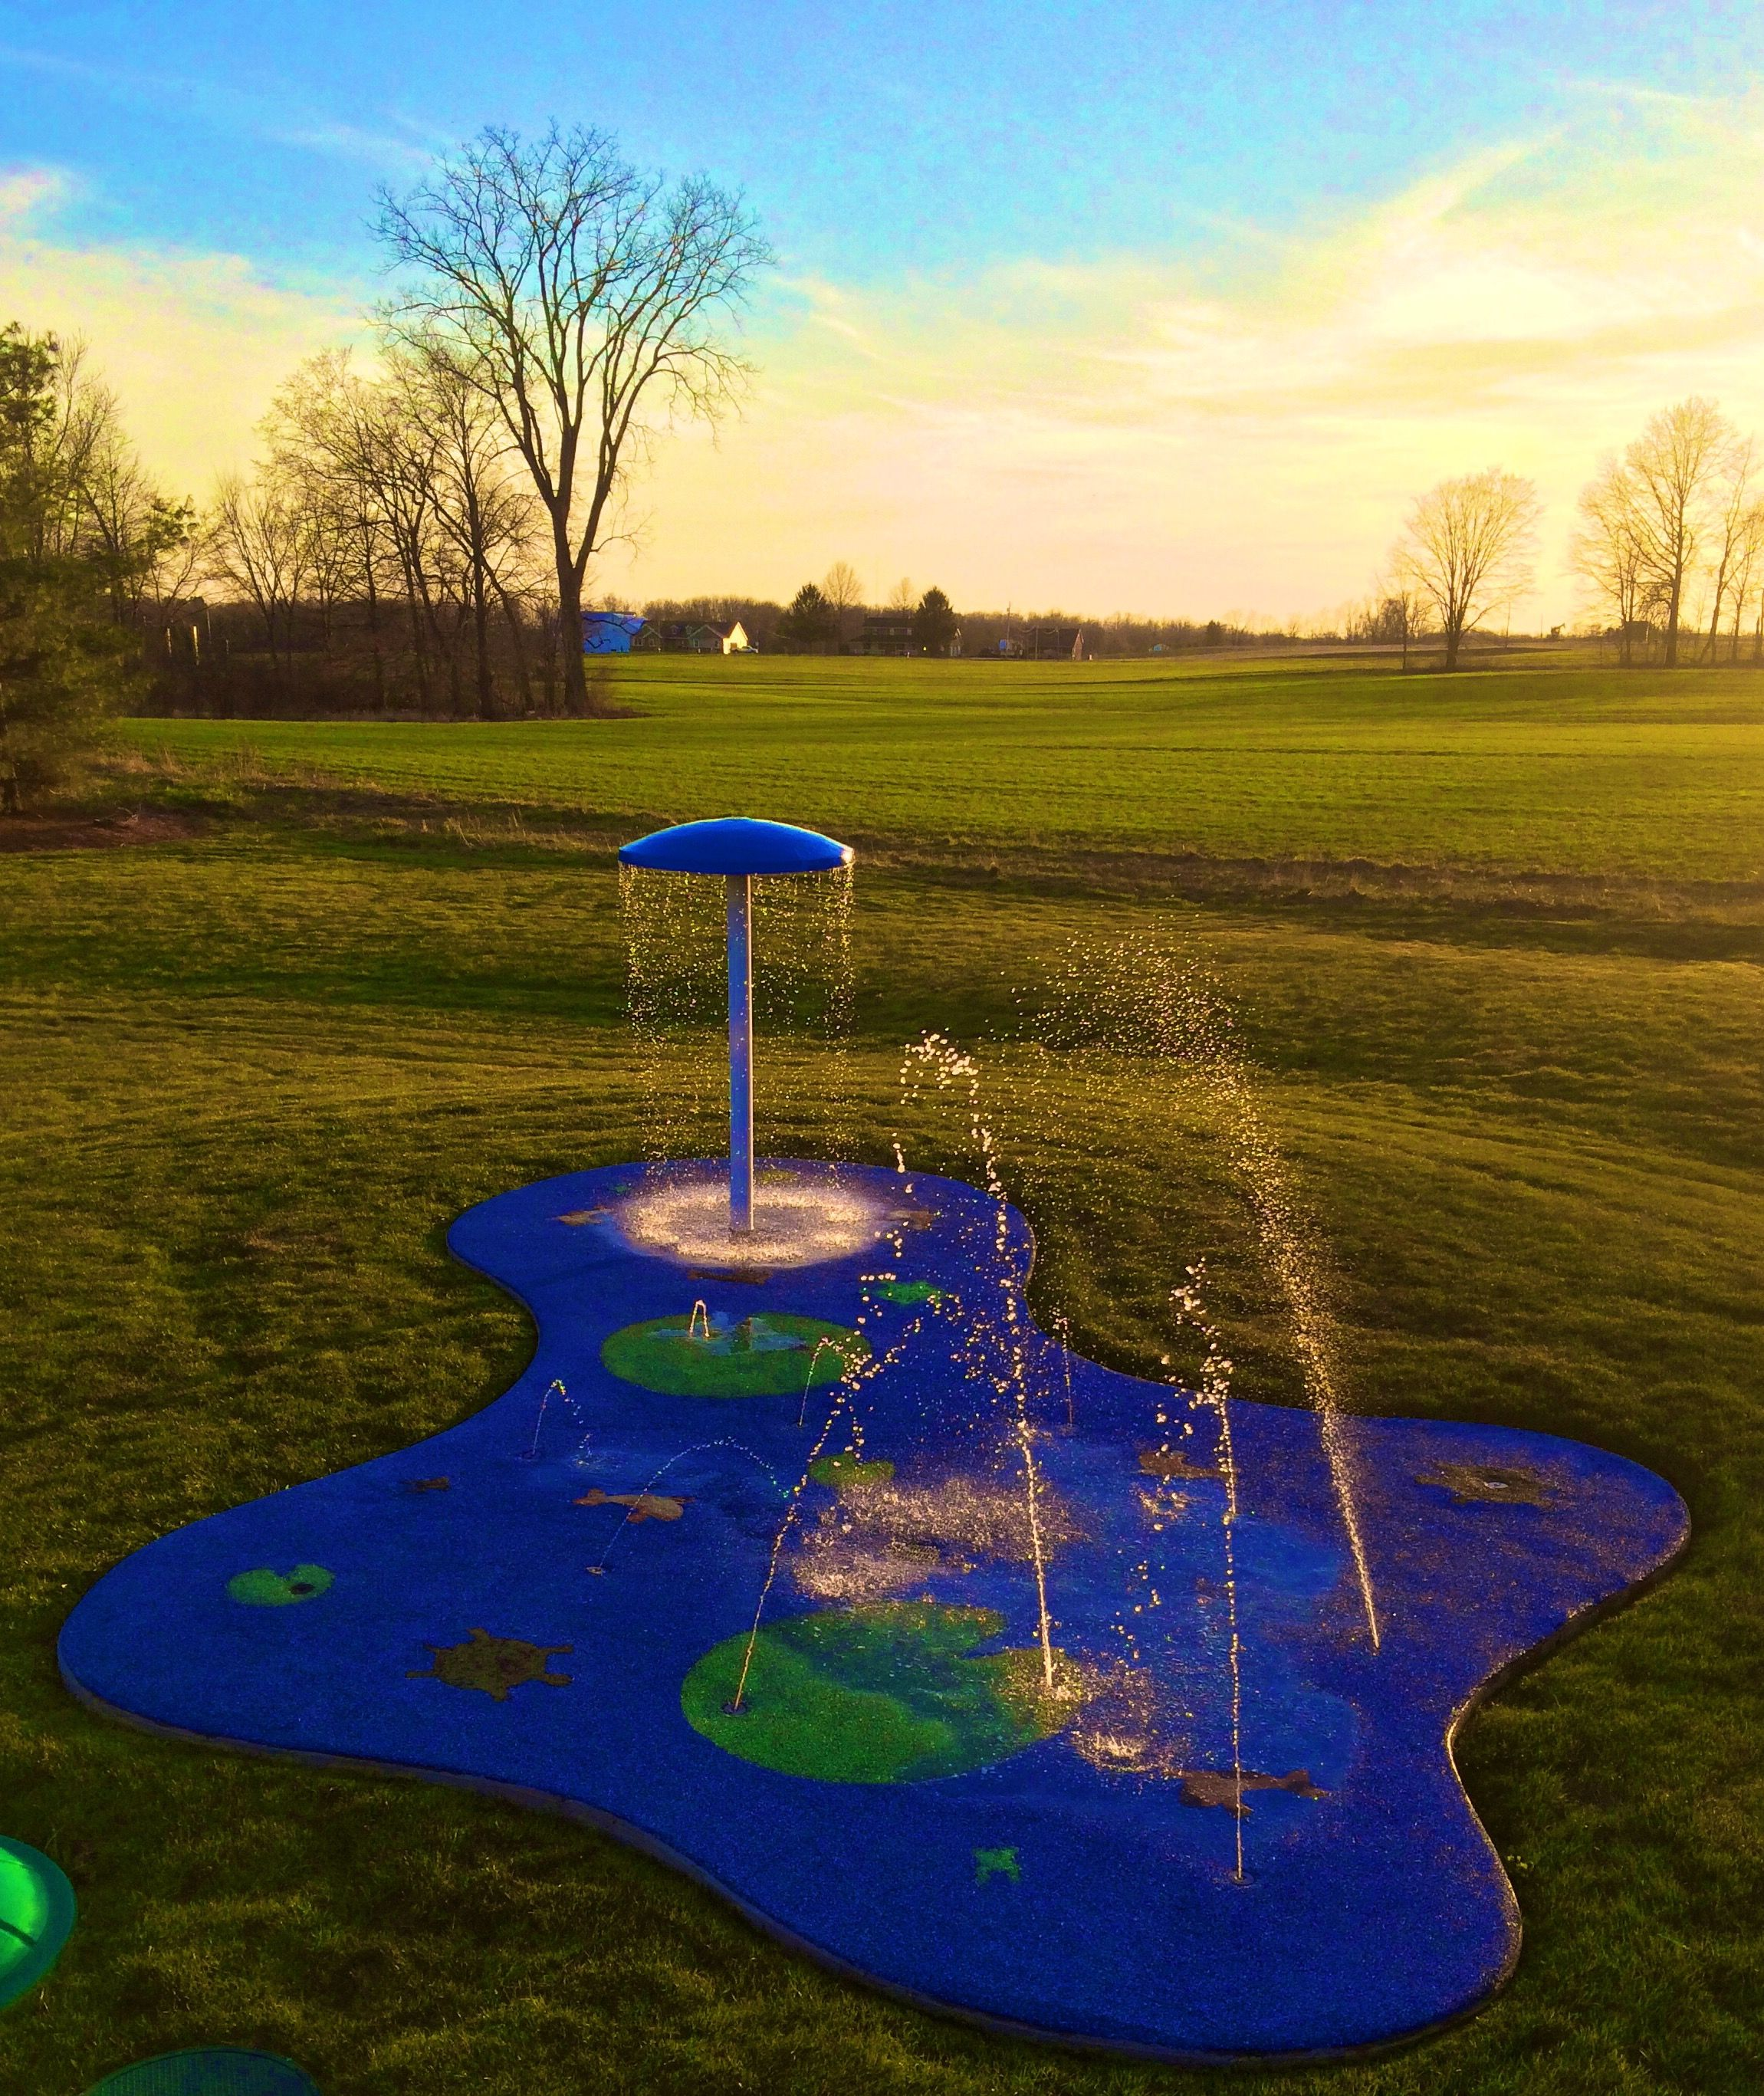 a home backyard splash pad is fun colorful and safe water play